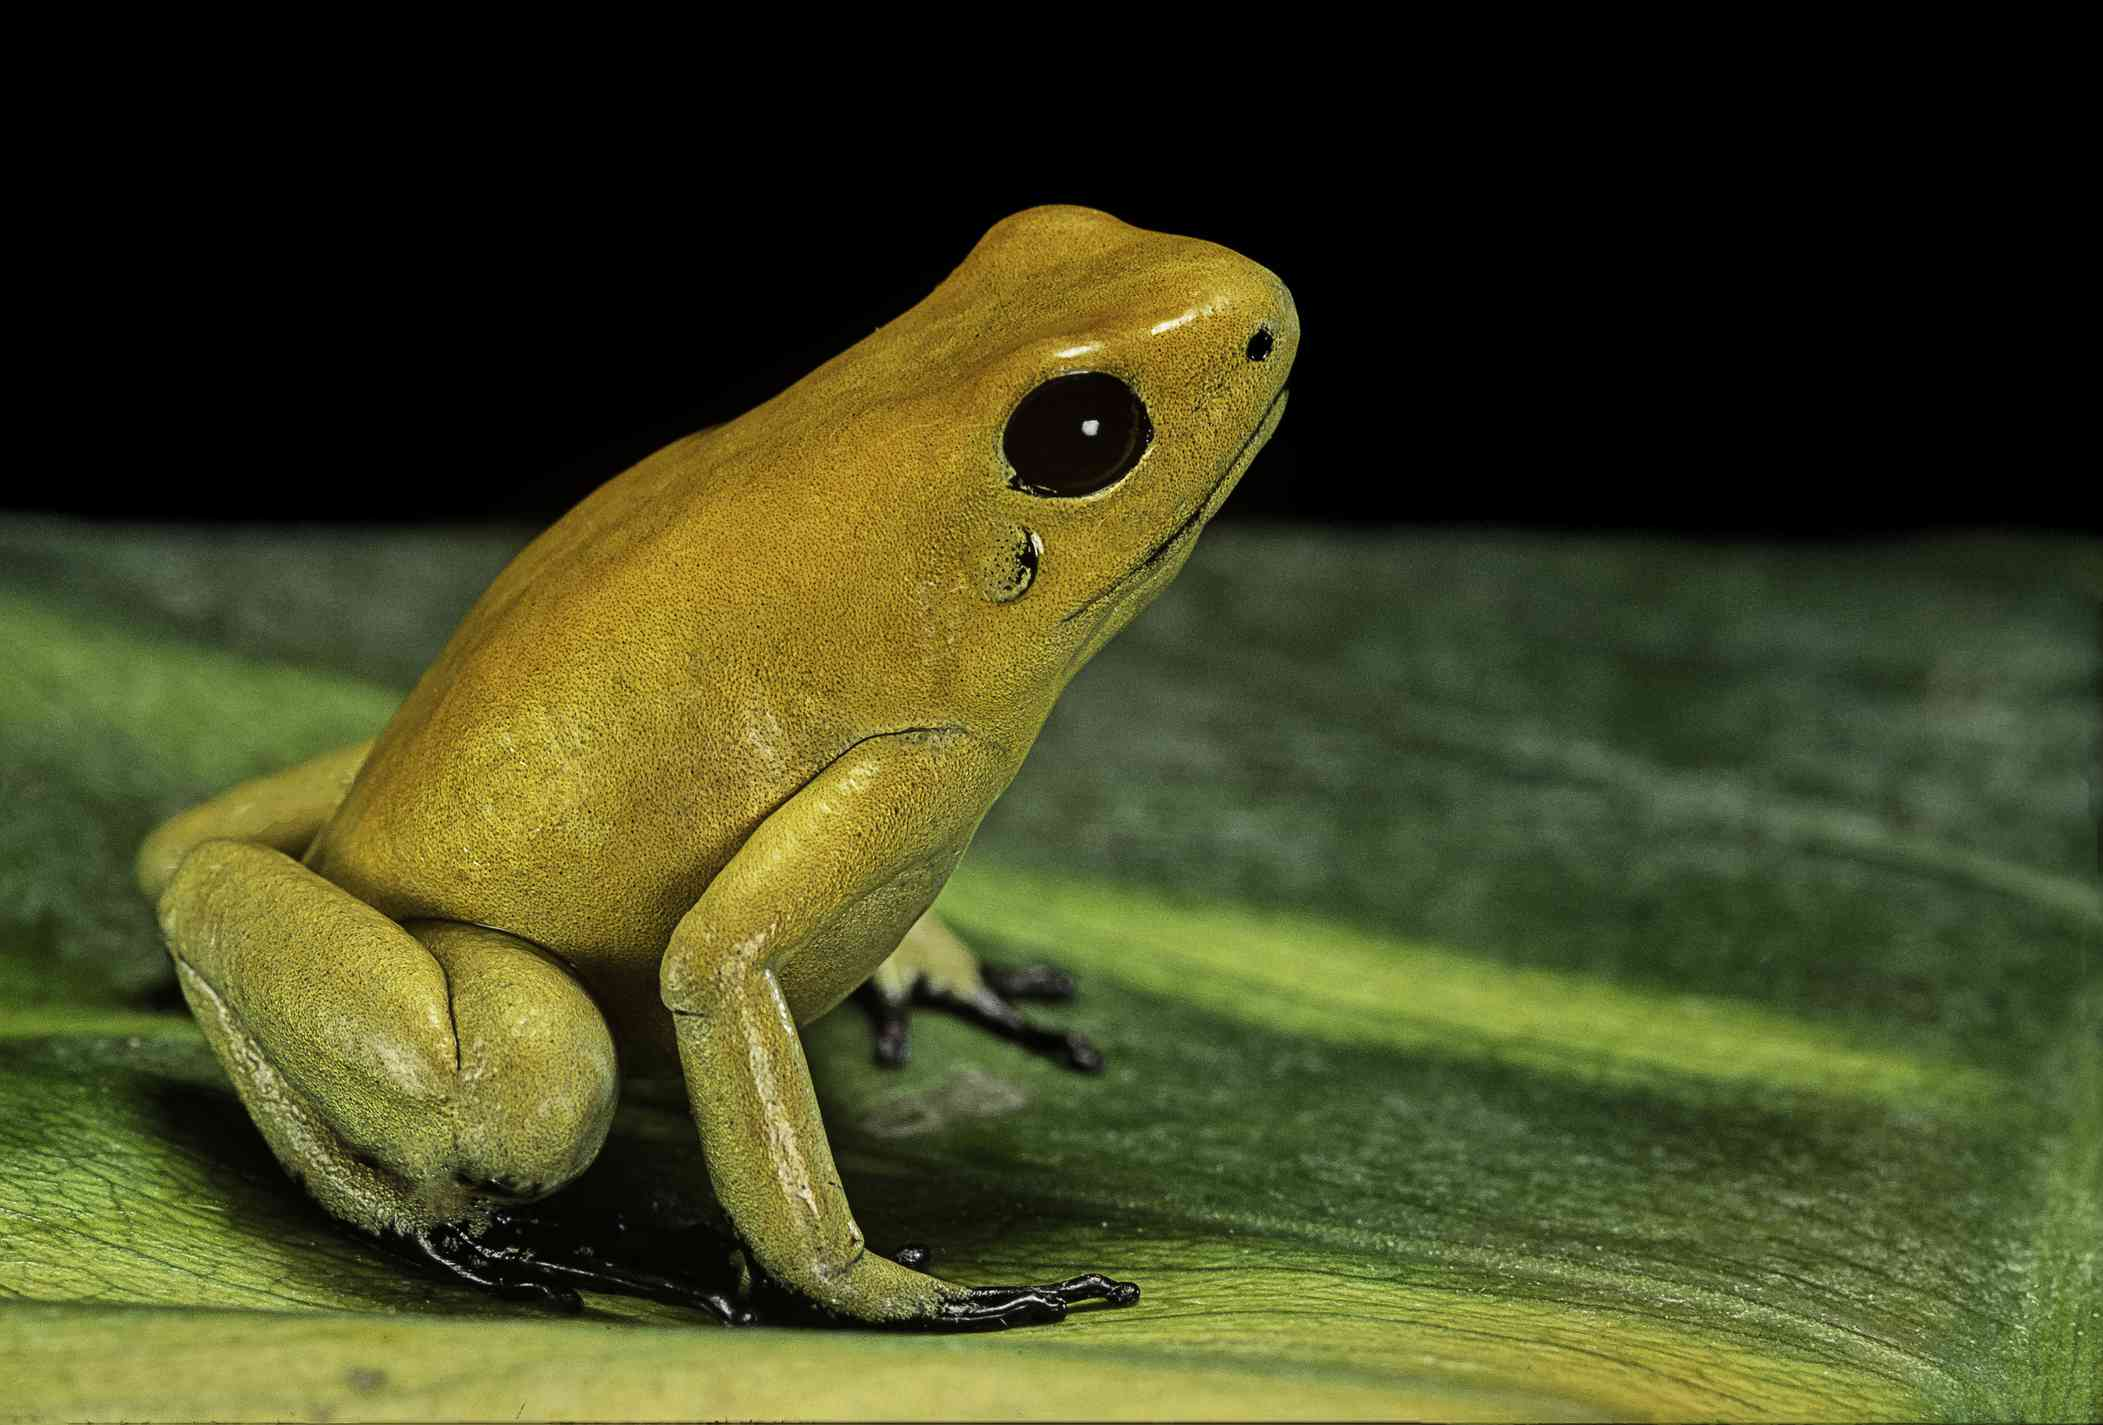 The golden poison frog (Phyllobates terribilis) is the most poisonous poison dart frog.